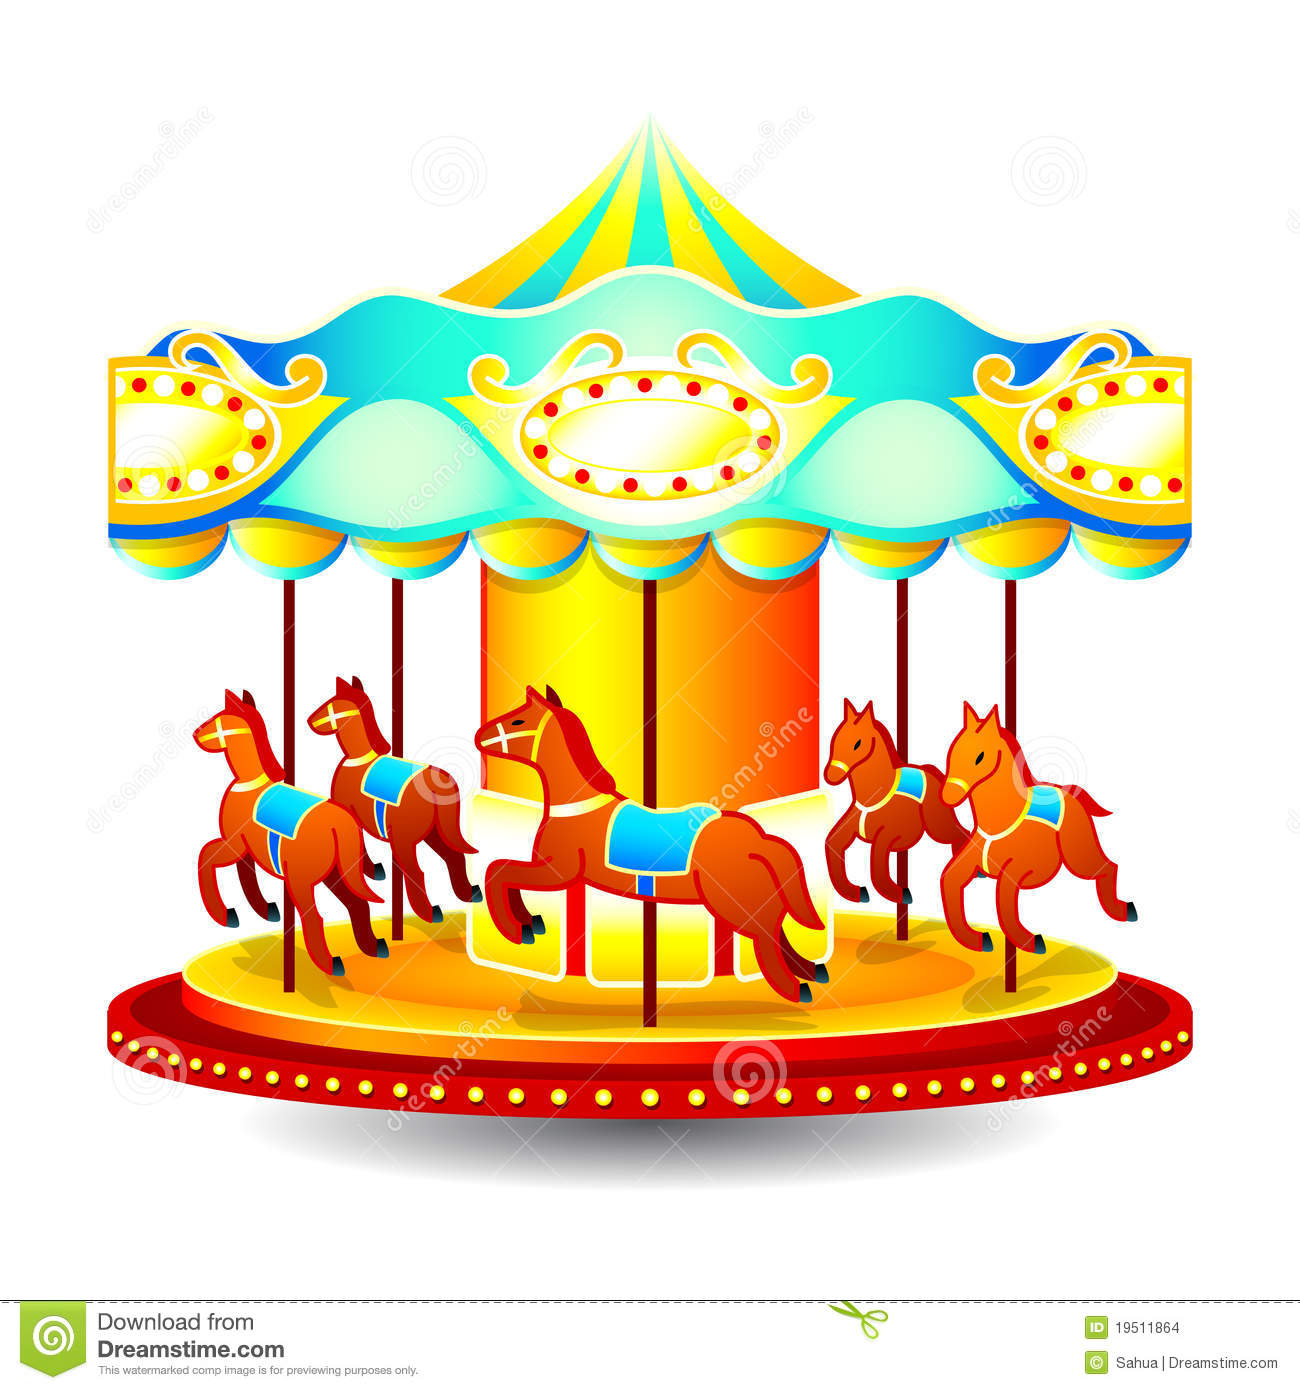 Merry-go-round Stock Vector. Illustration Of Clip, Horse